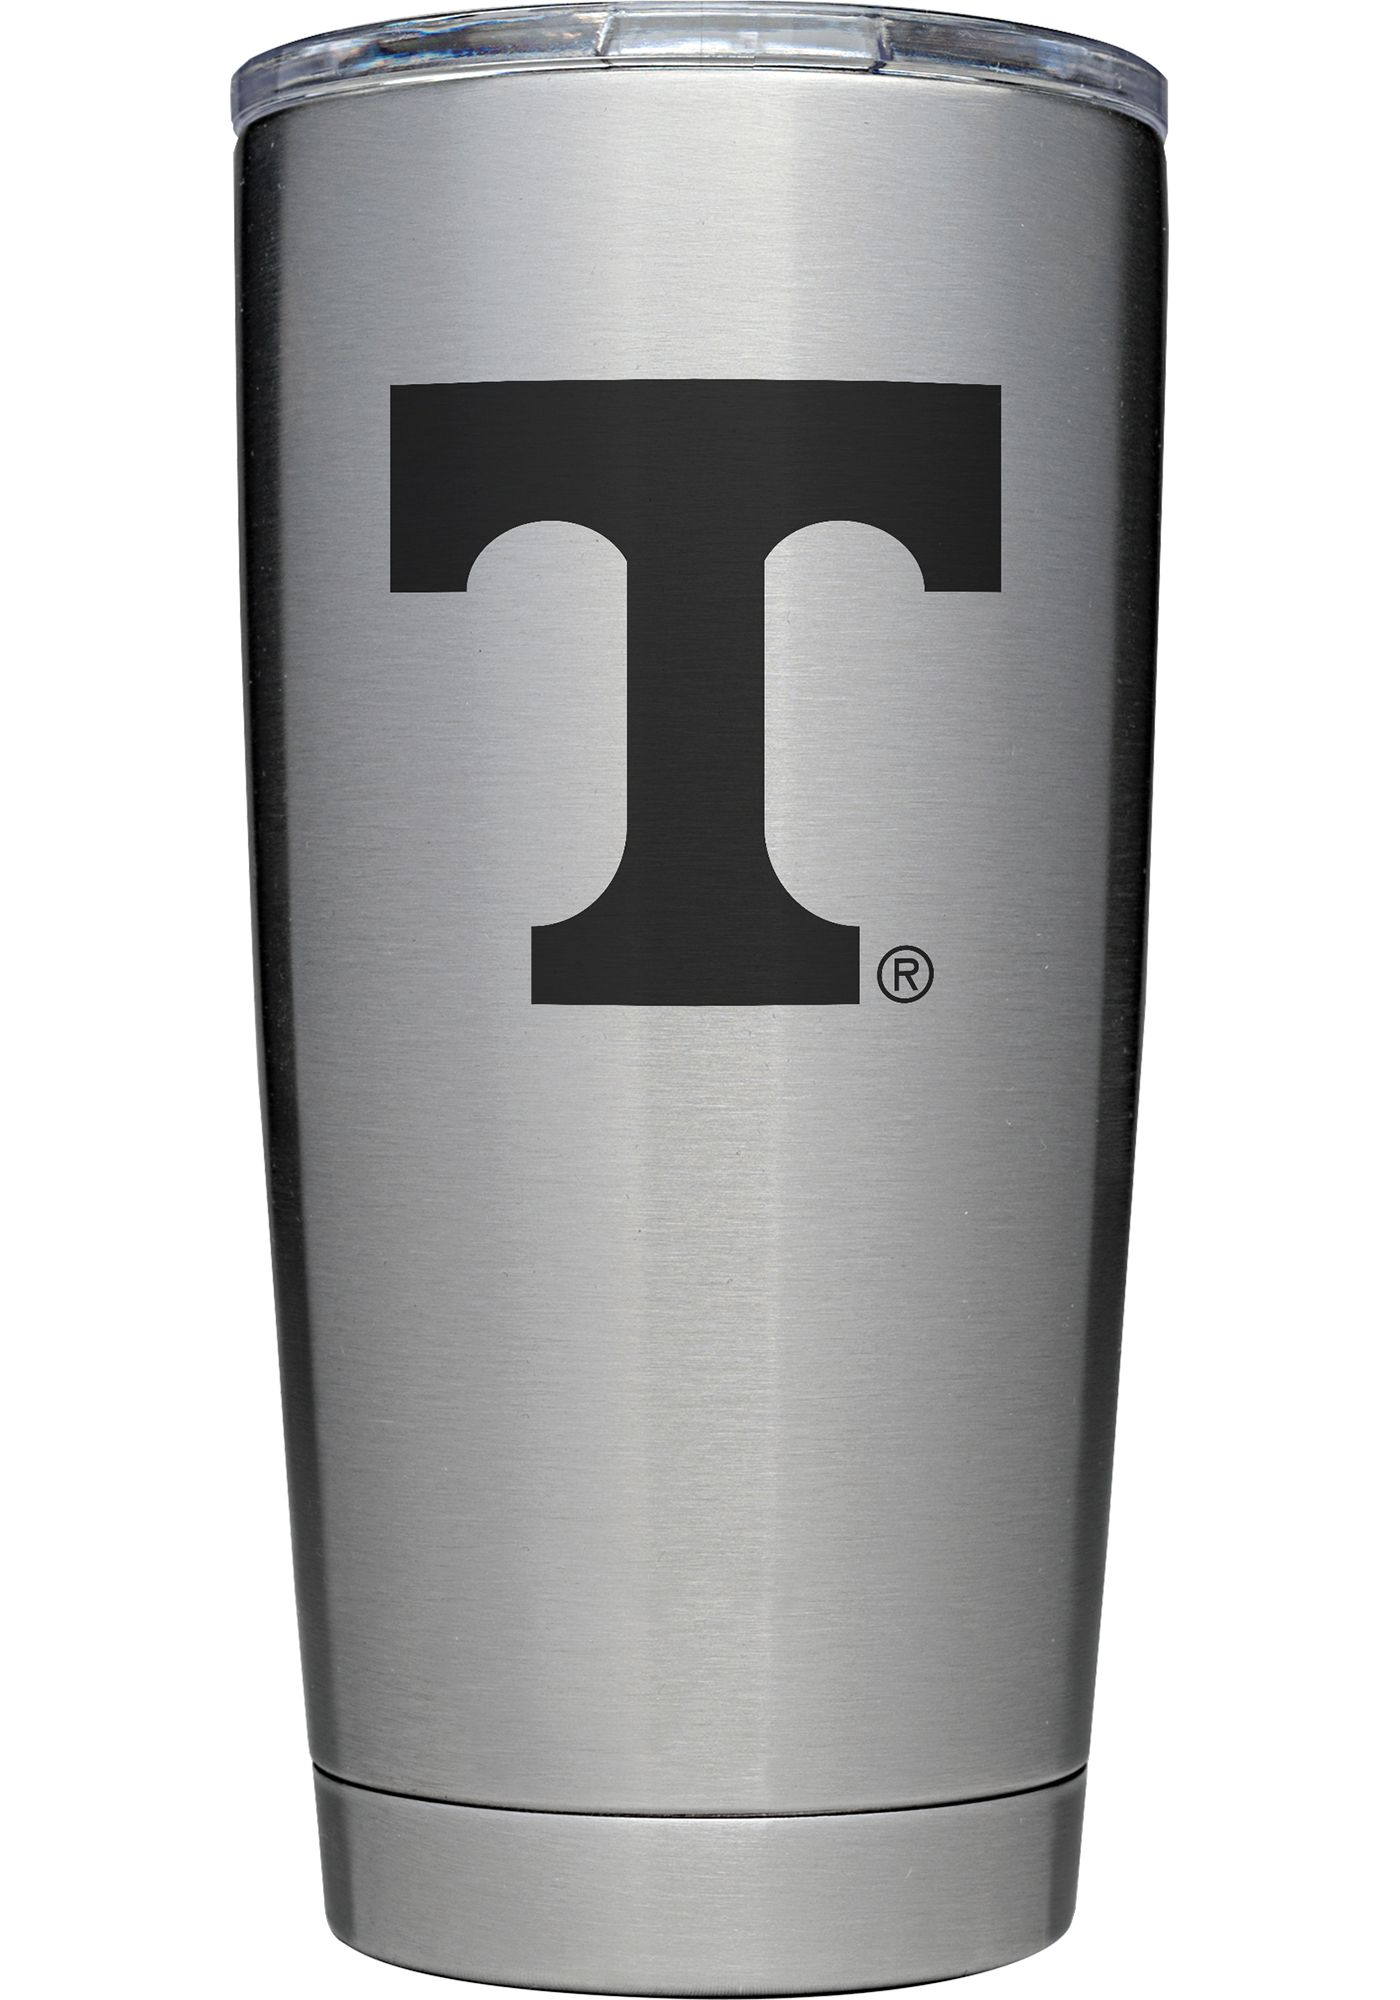 YETI Tennessee Volunteers 20 oz. Rambler Tumbler with MagSlider Lid